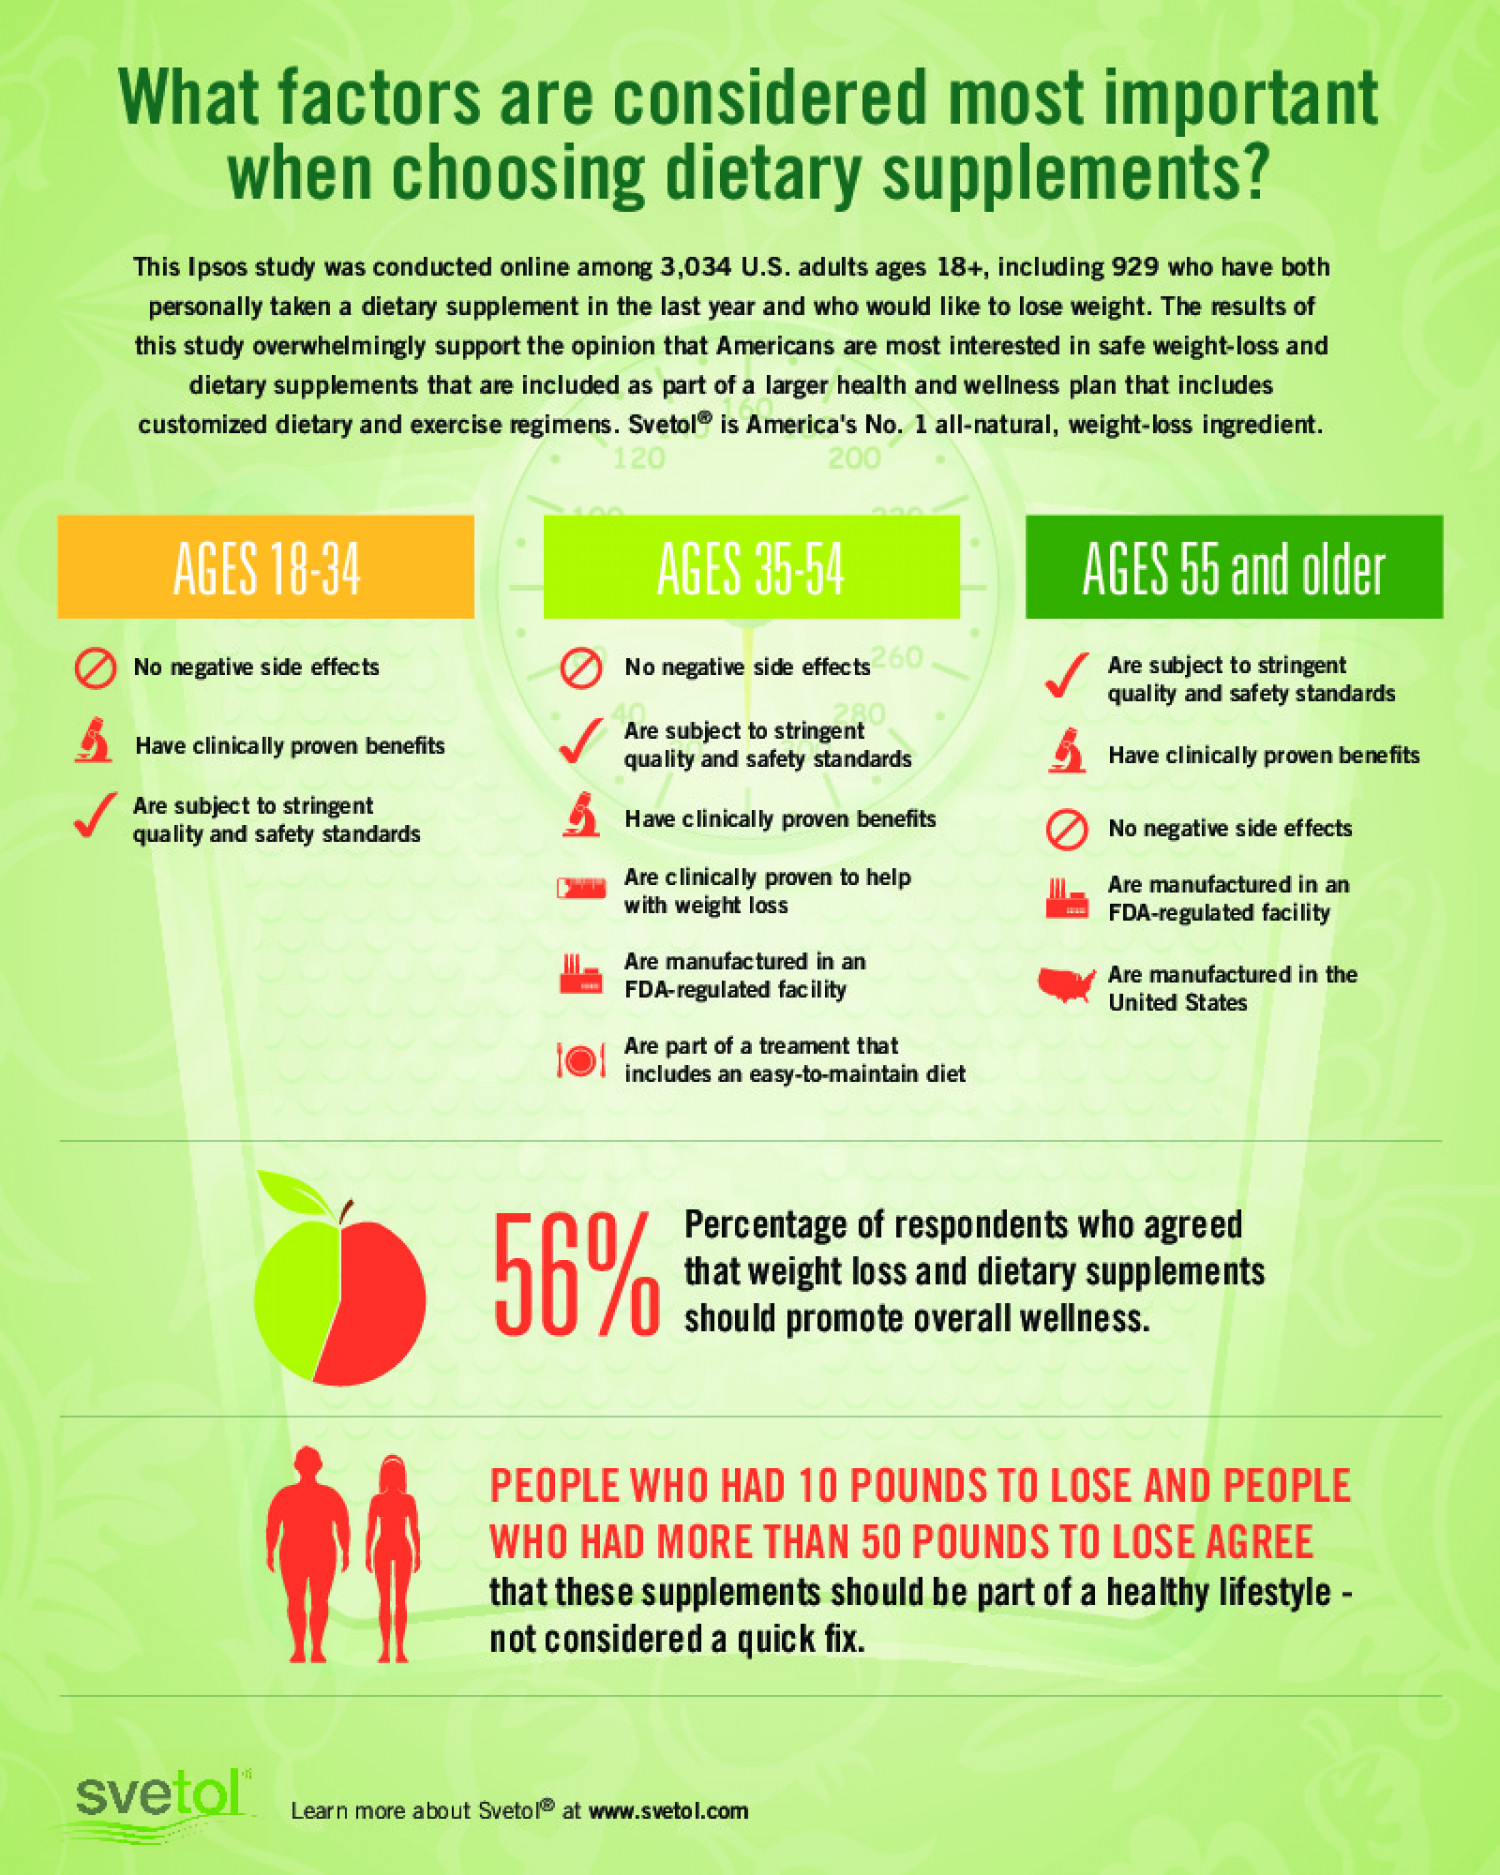 Most Important Factors When Choosing Dietary Supplements